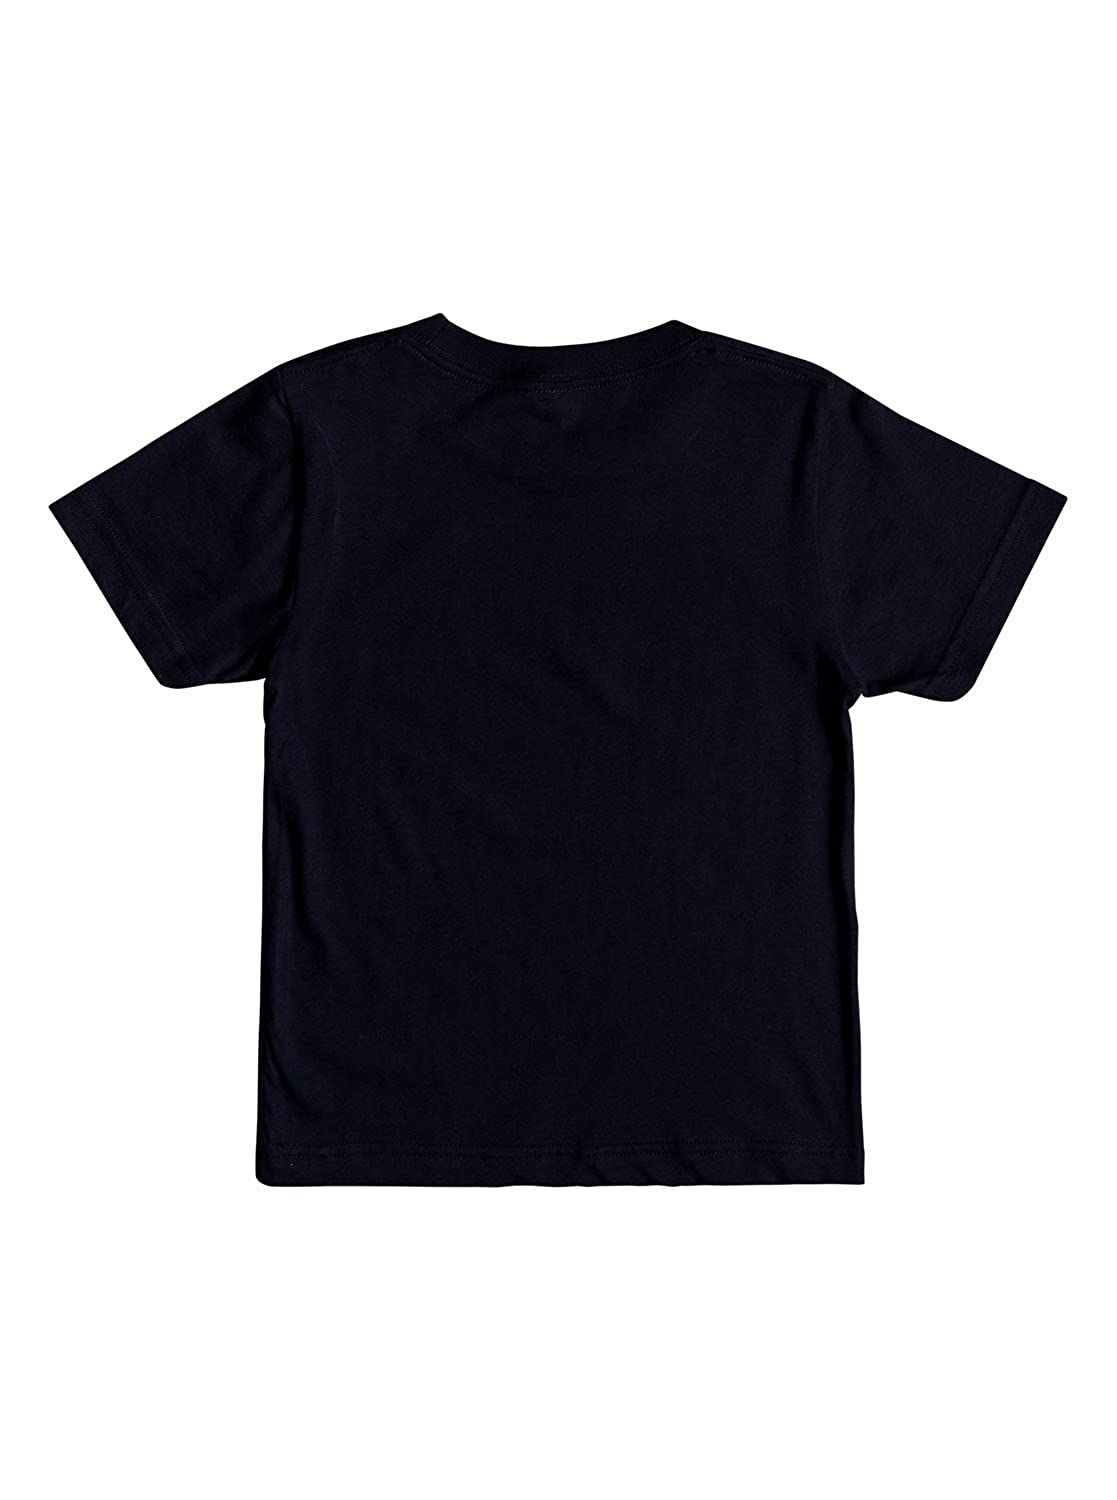 QUIKSILVER Boys Capt Cavern Youth Tee